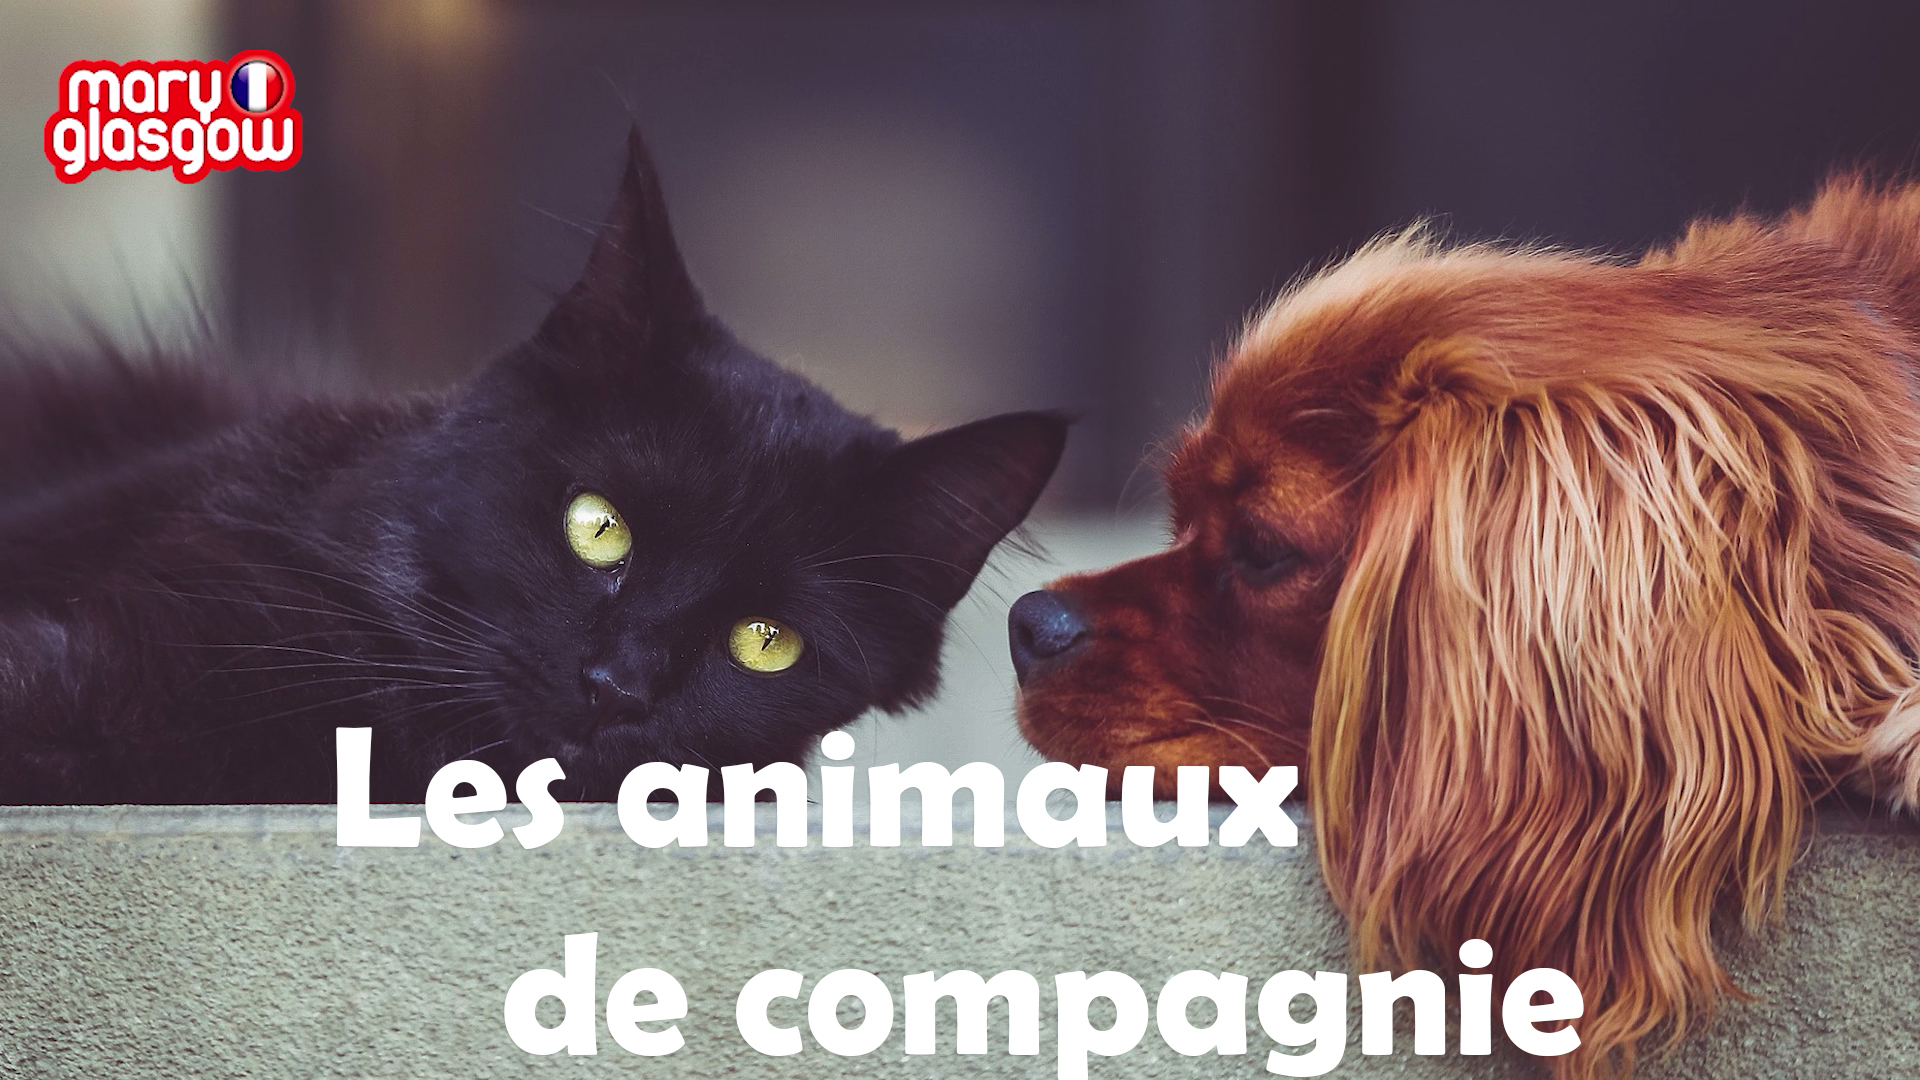 Les animaux screenshot